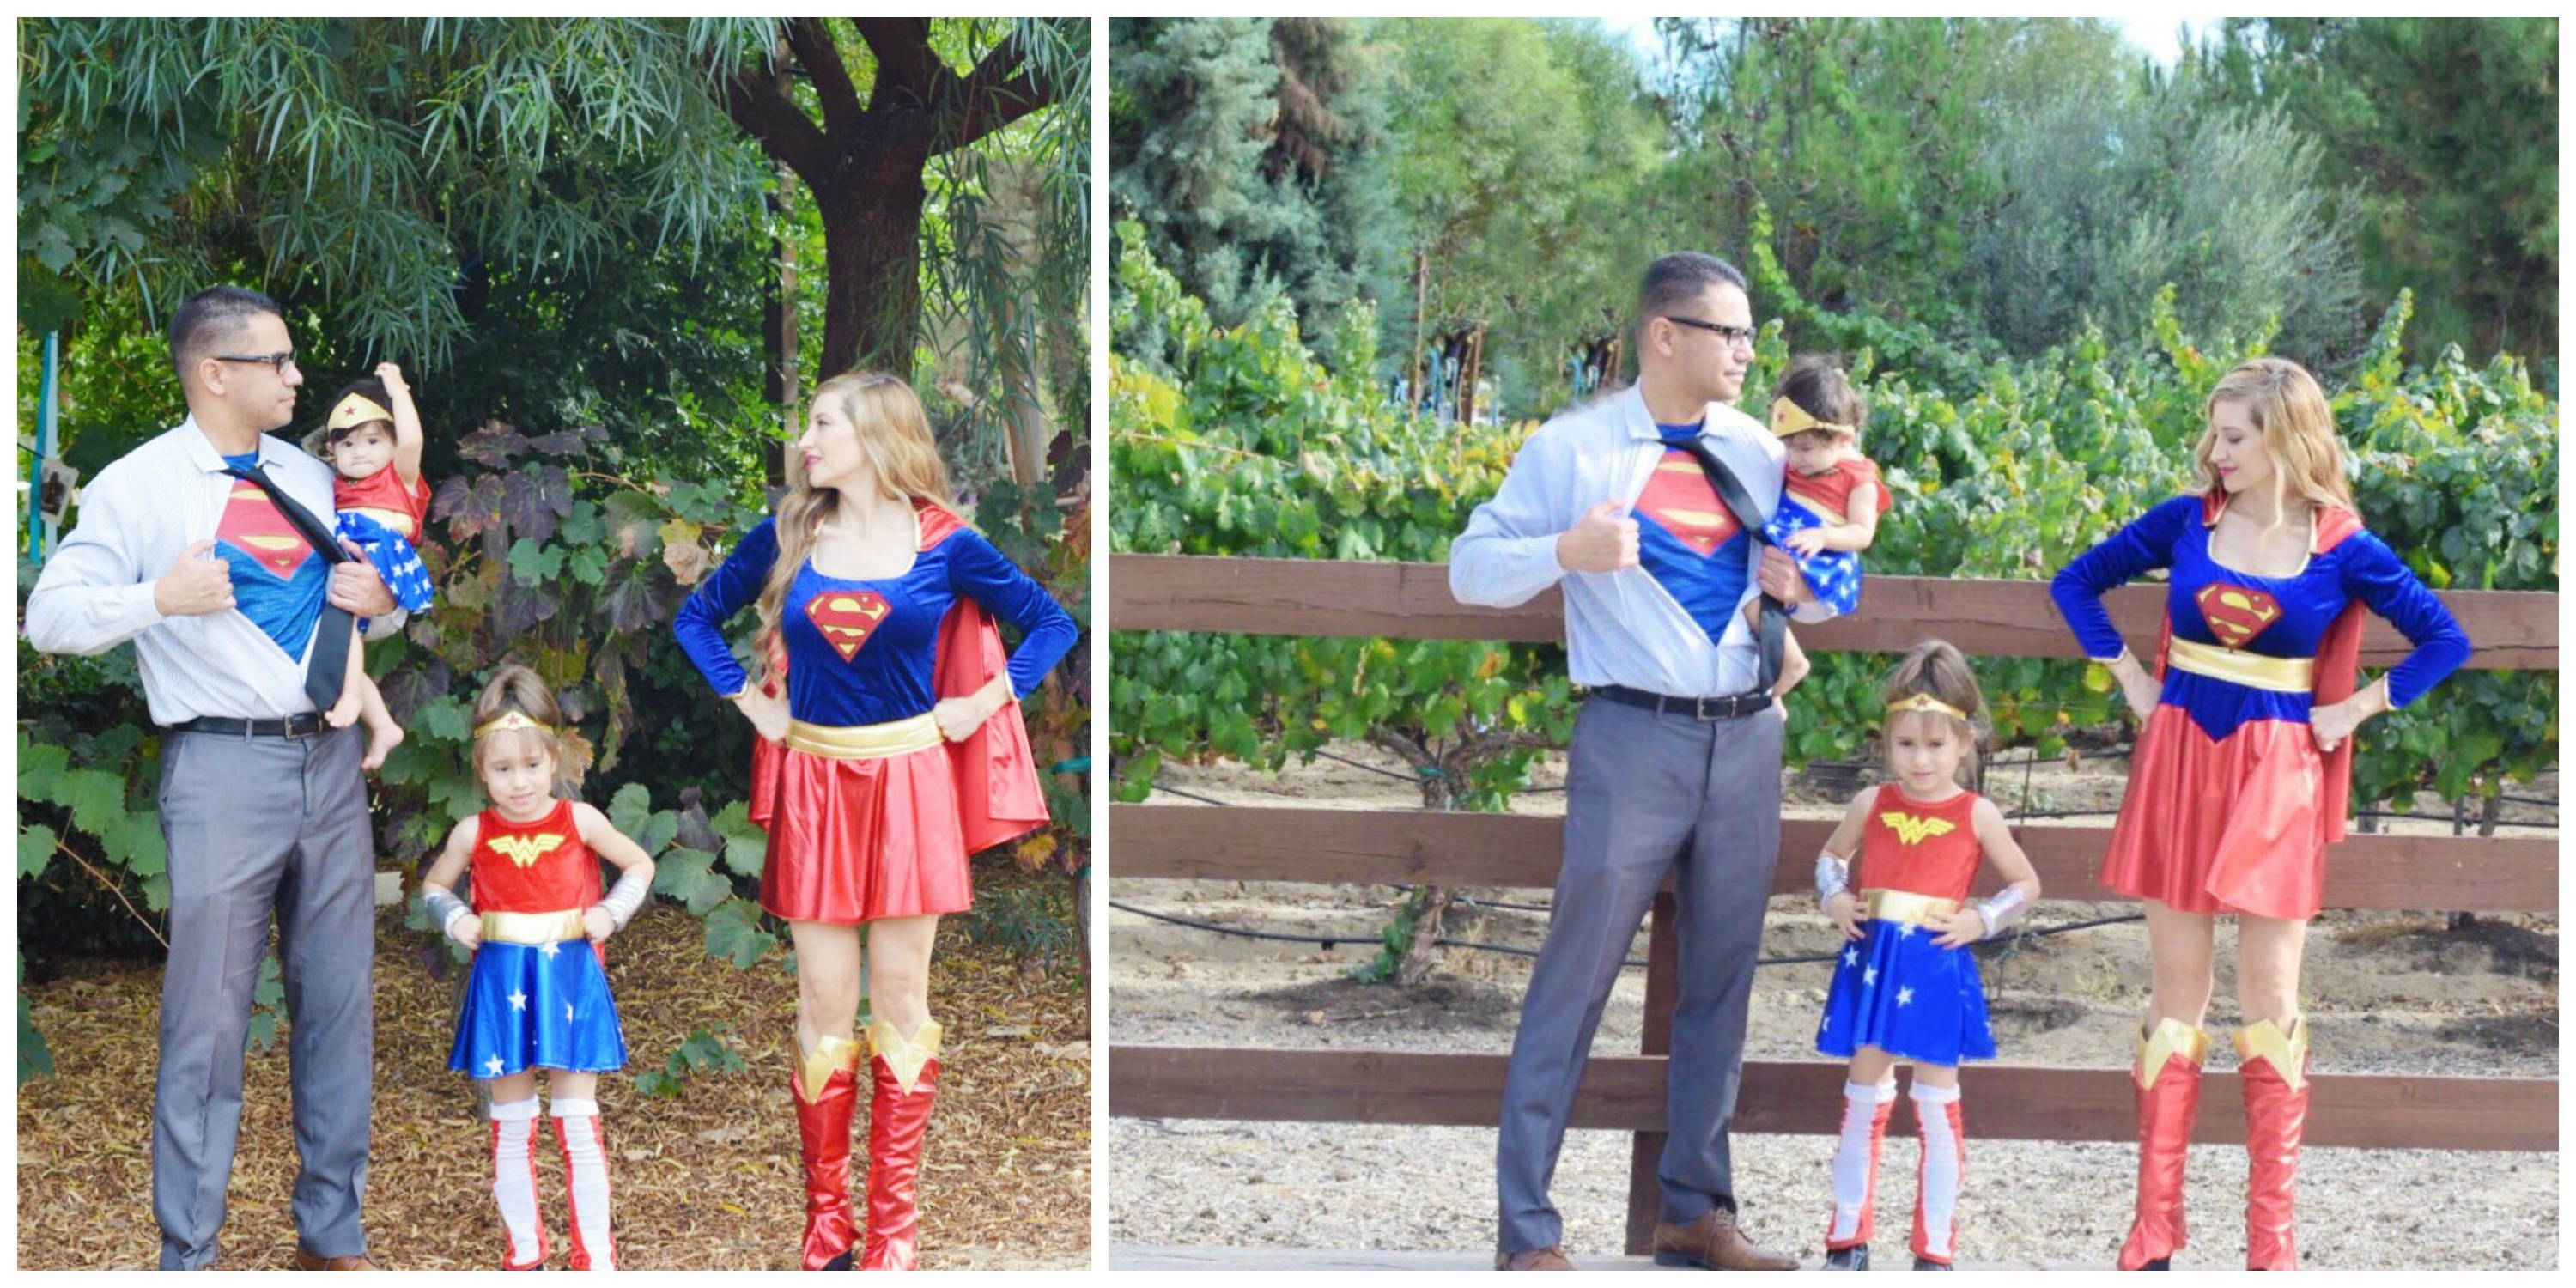 Halloween Costume Ideas For Families & Halloween Costume Ideas for Families - Family Costumes